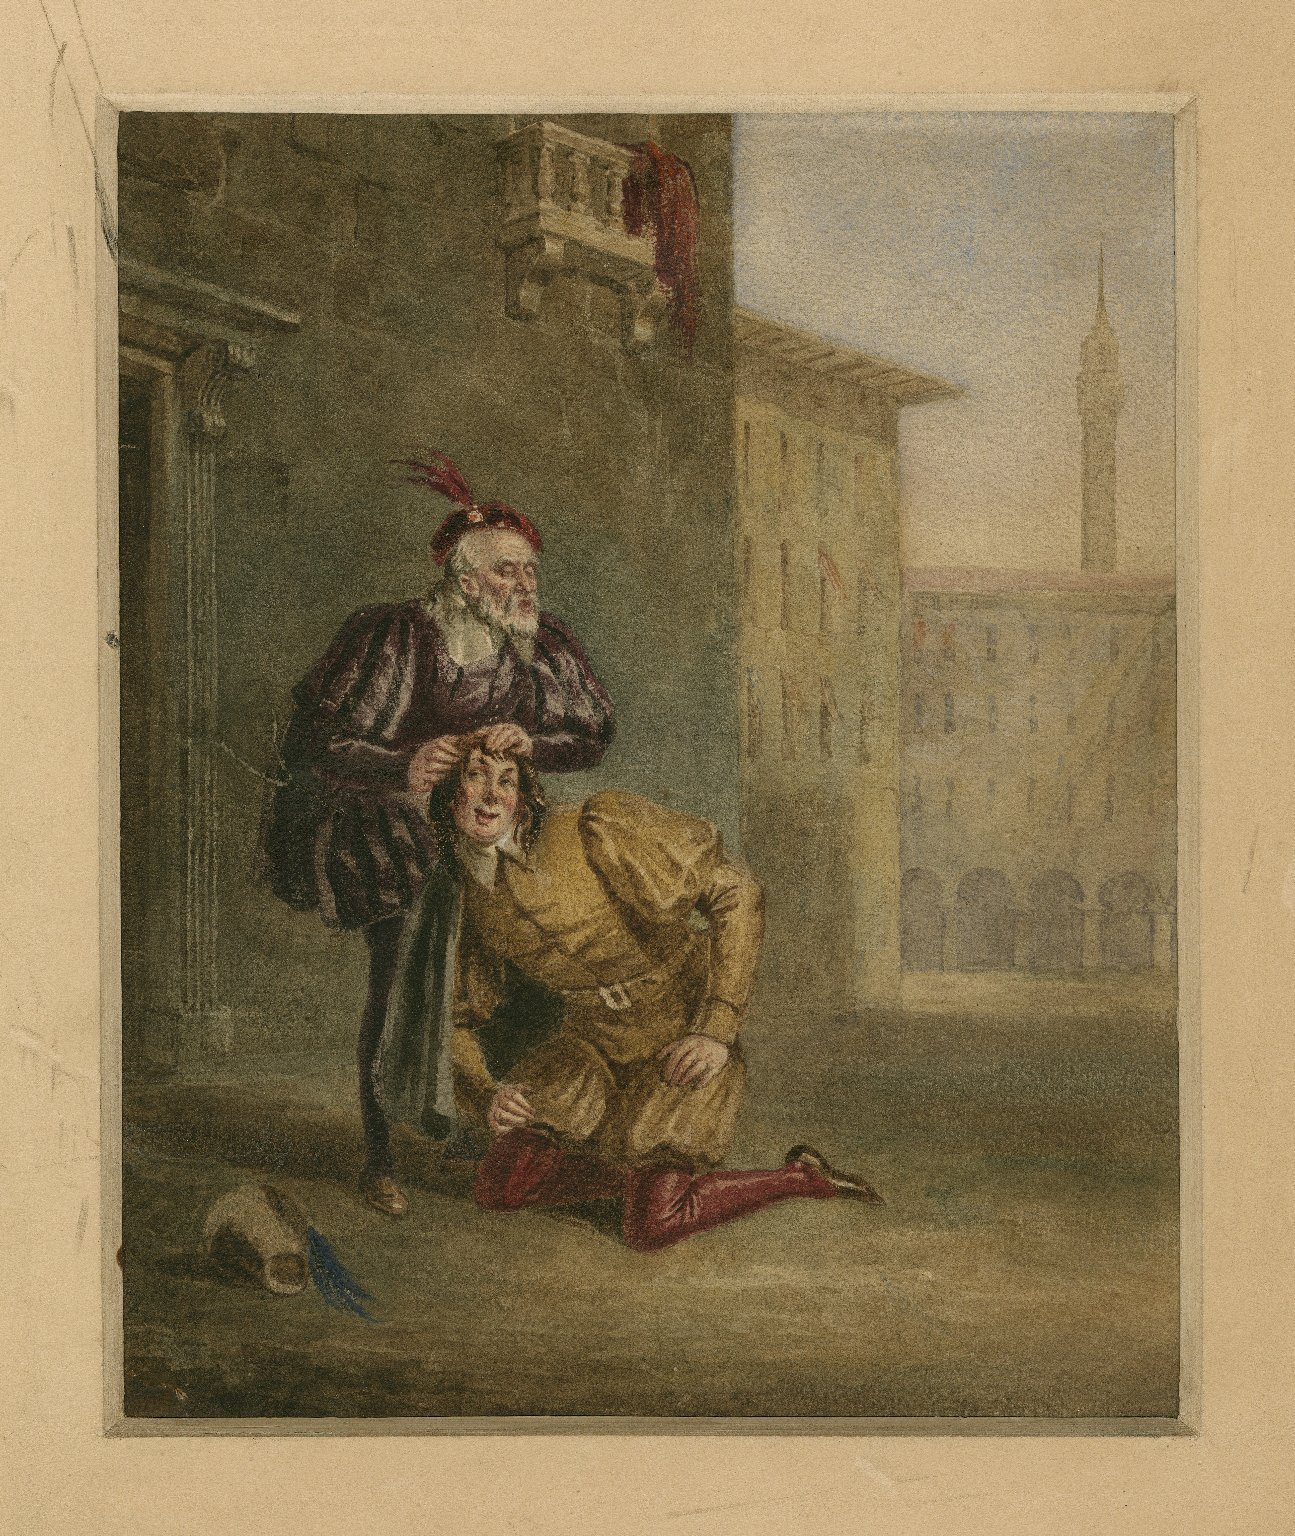 [Merchant of Venice, II, 2, Launcelot Gobbo and his blind father] [graphic] / [Henry Travis].